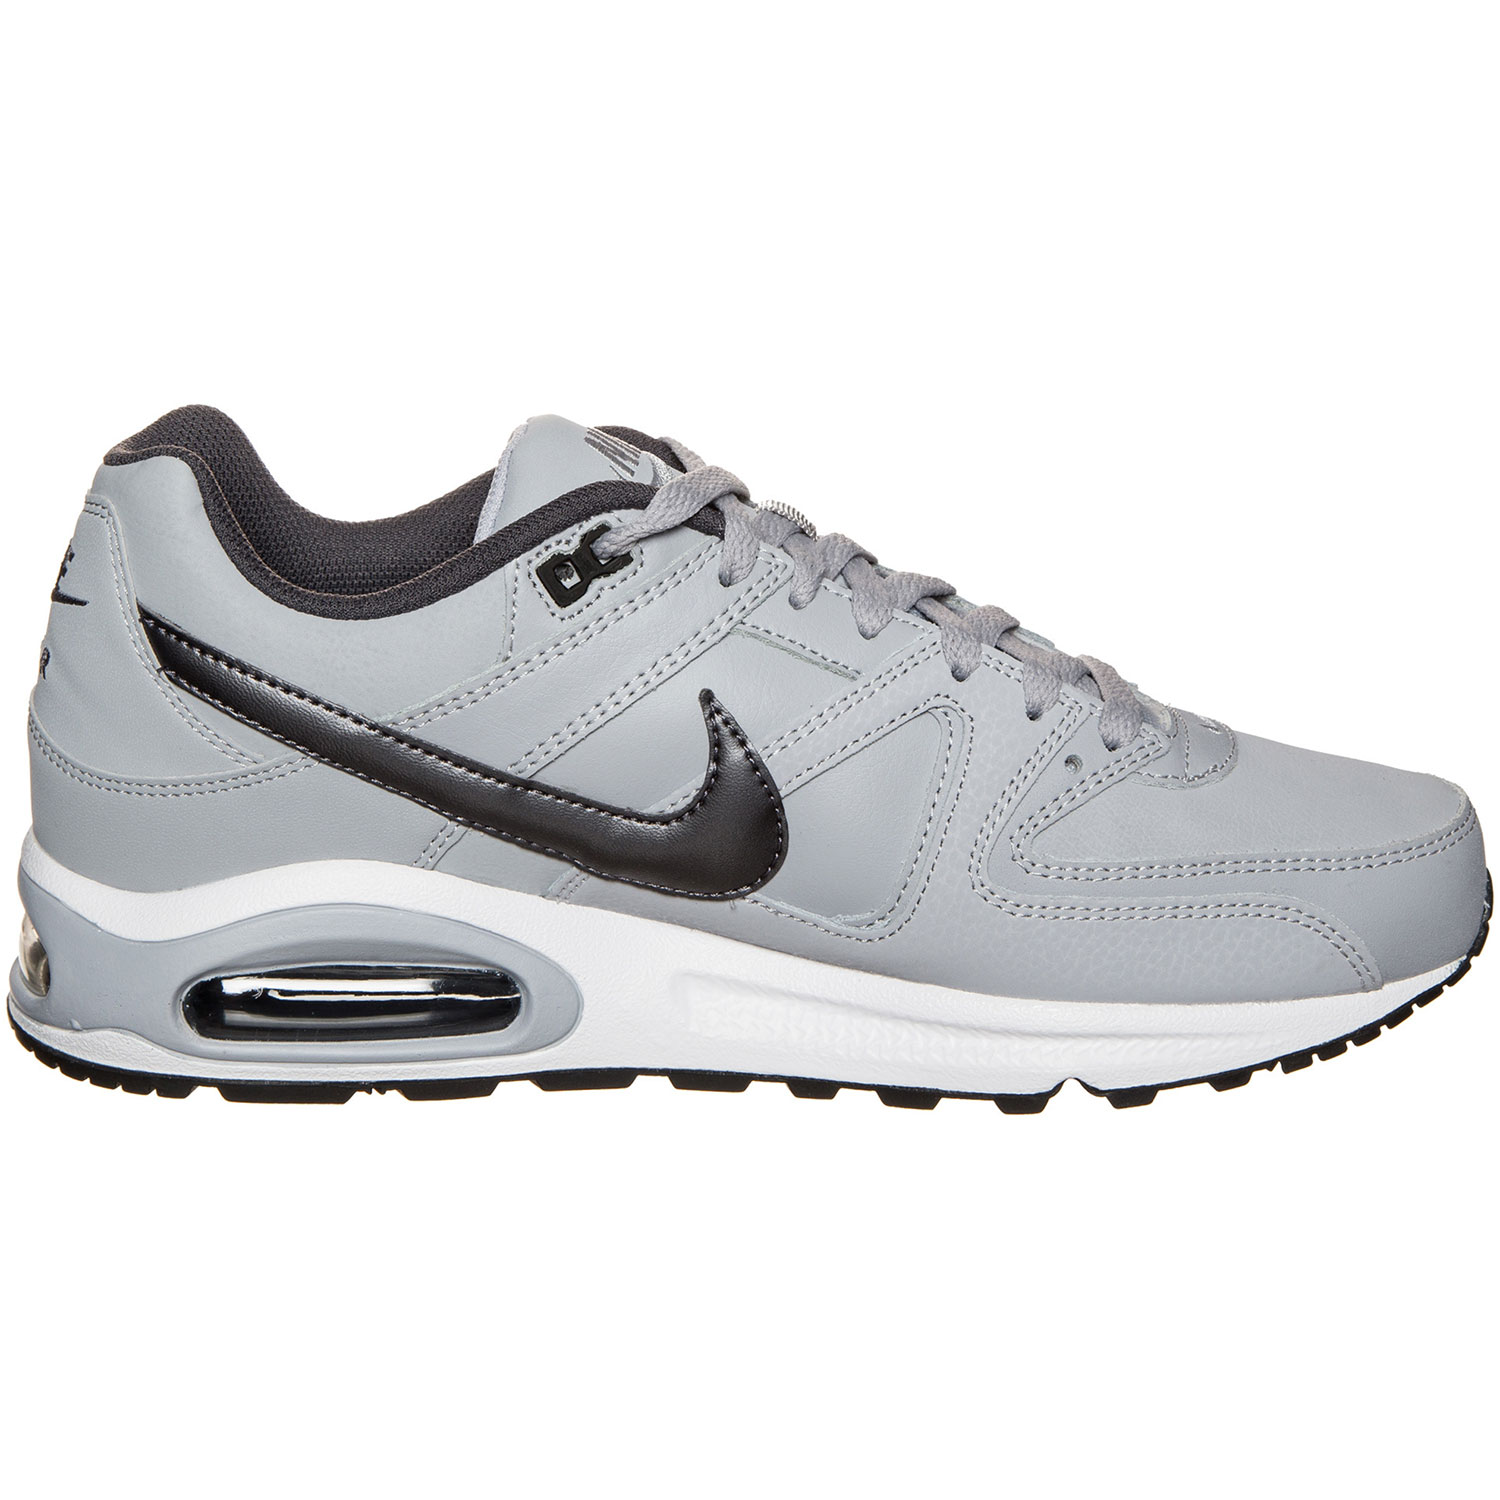 Nike Air Max Command Leather Herren Sneaker grau weiß 749760 012